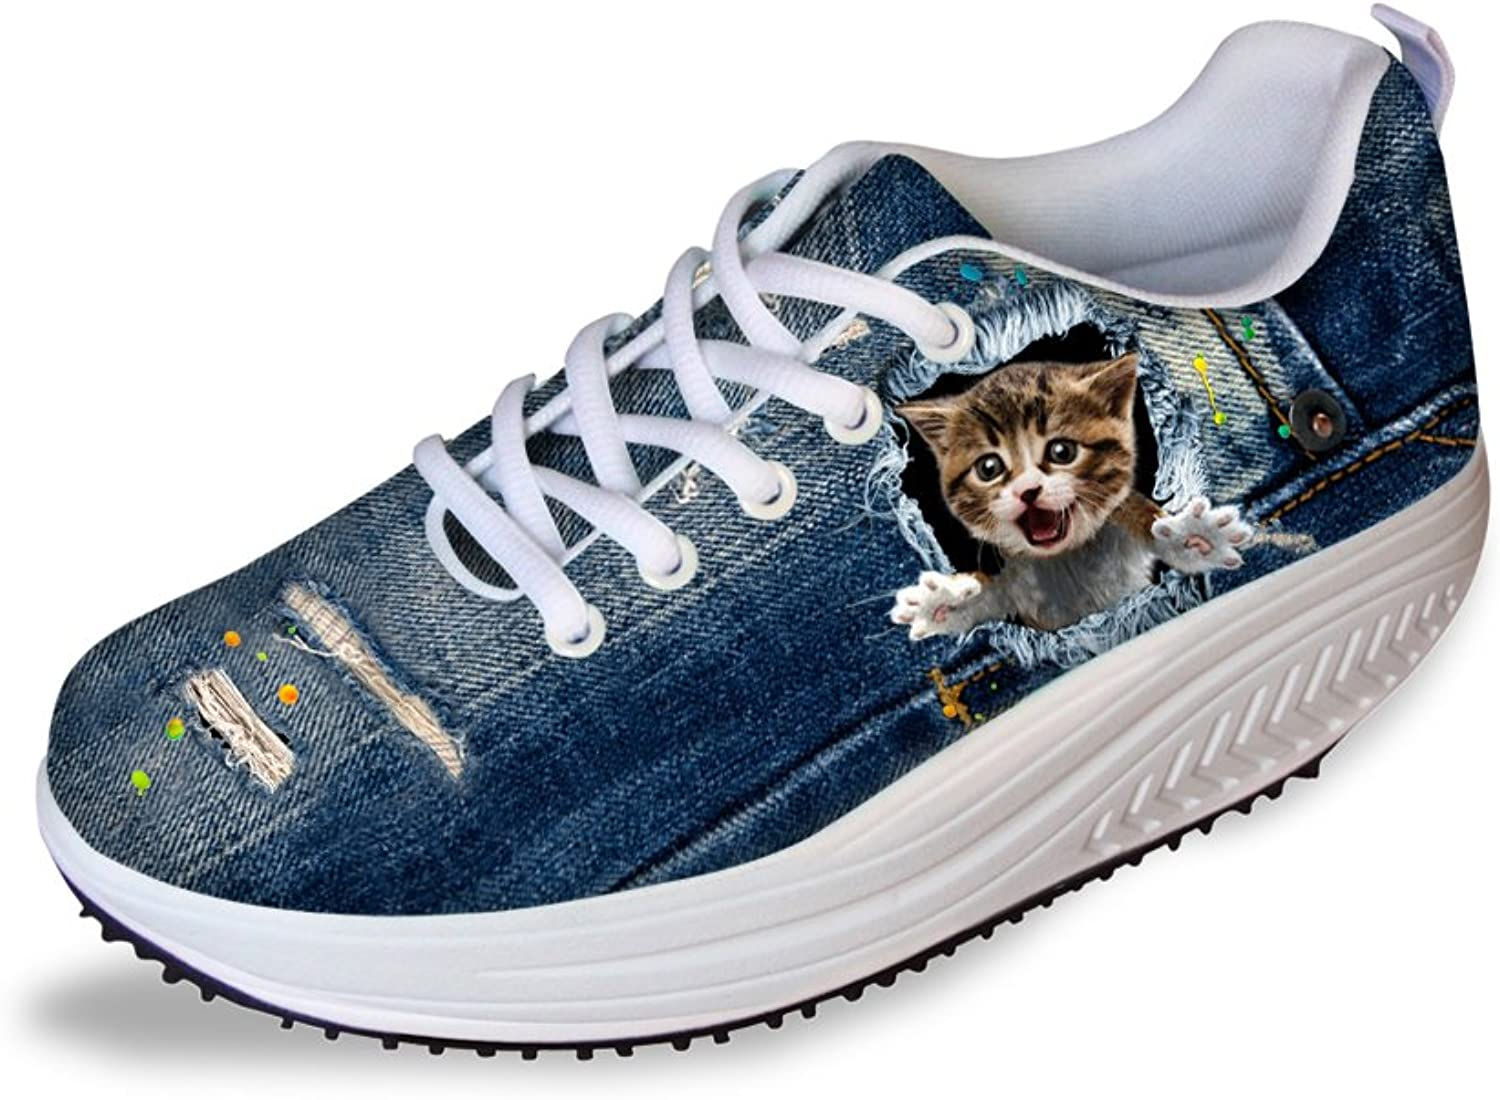 Doginthehole Toning shoes Denim 3D Cat Print Sneakers Women Fashion Swing shoes